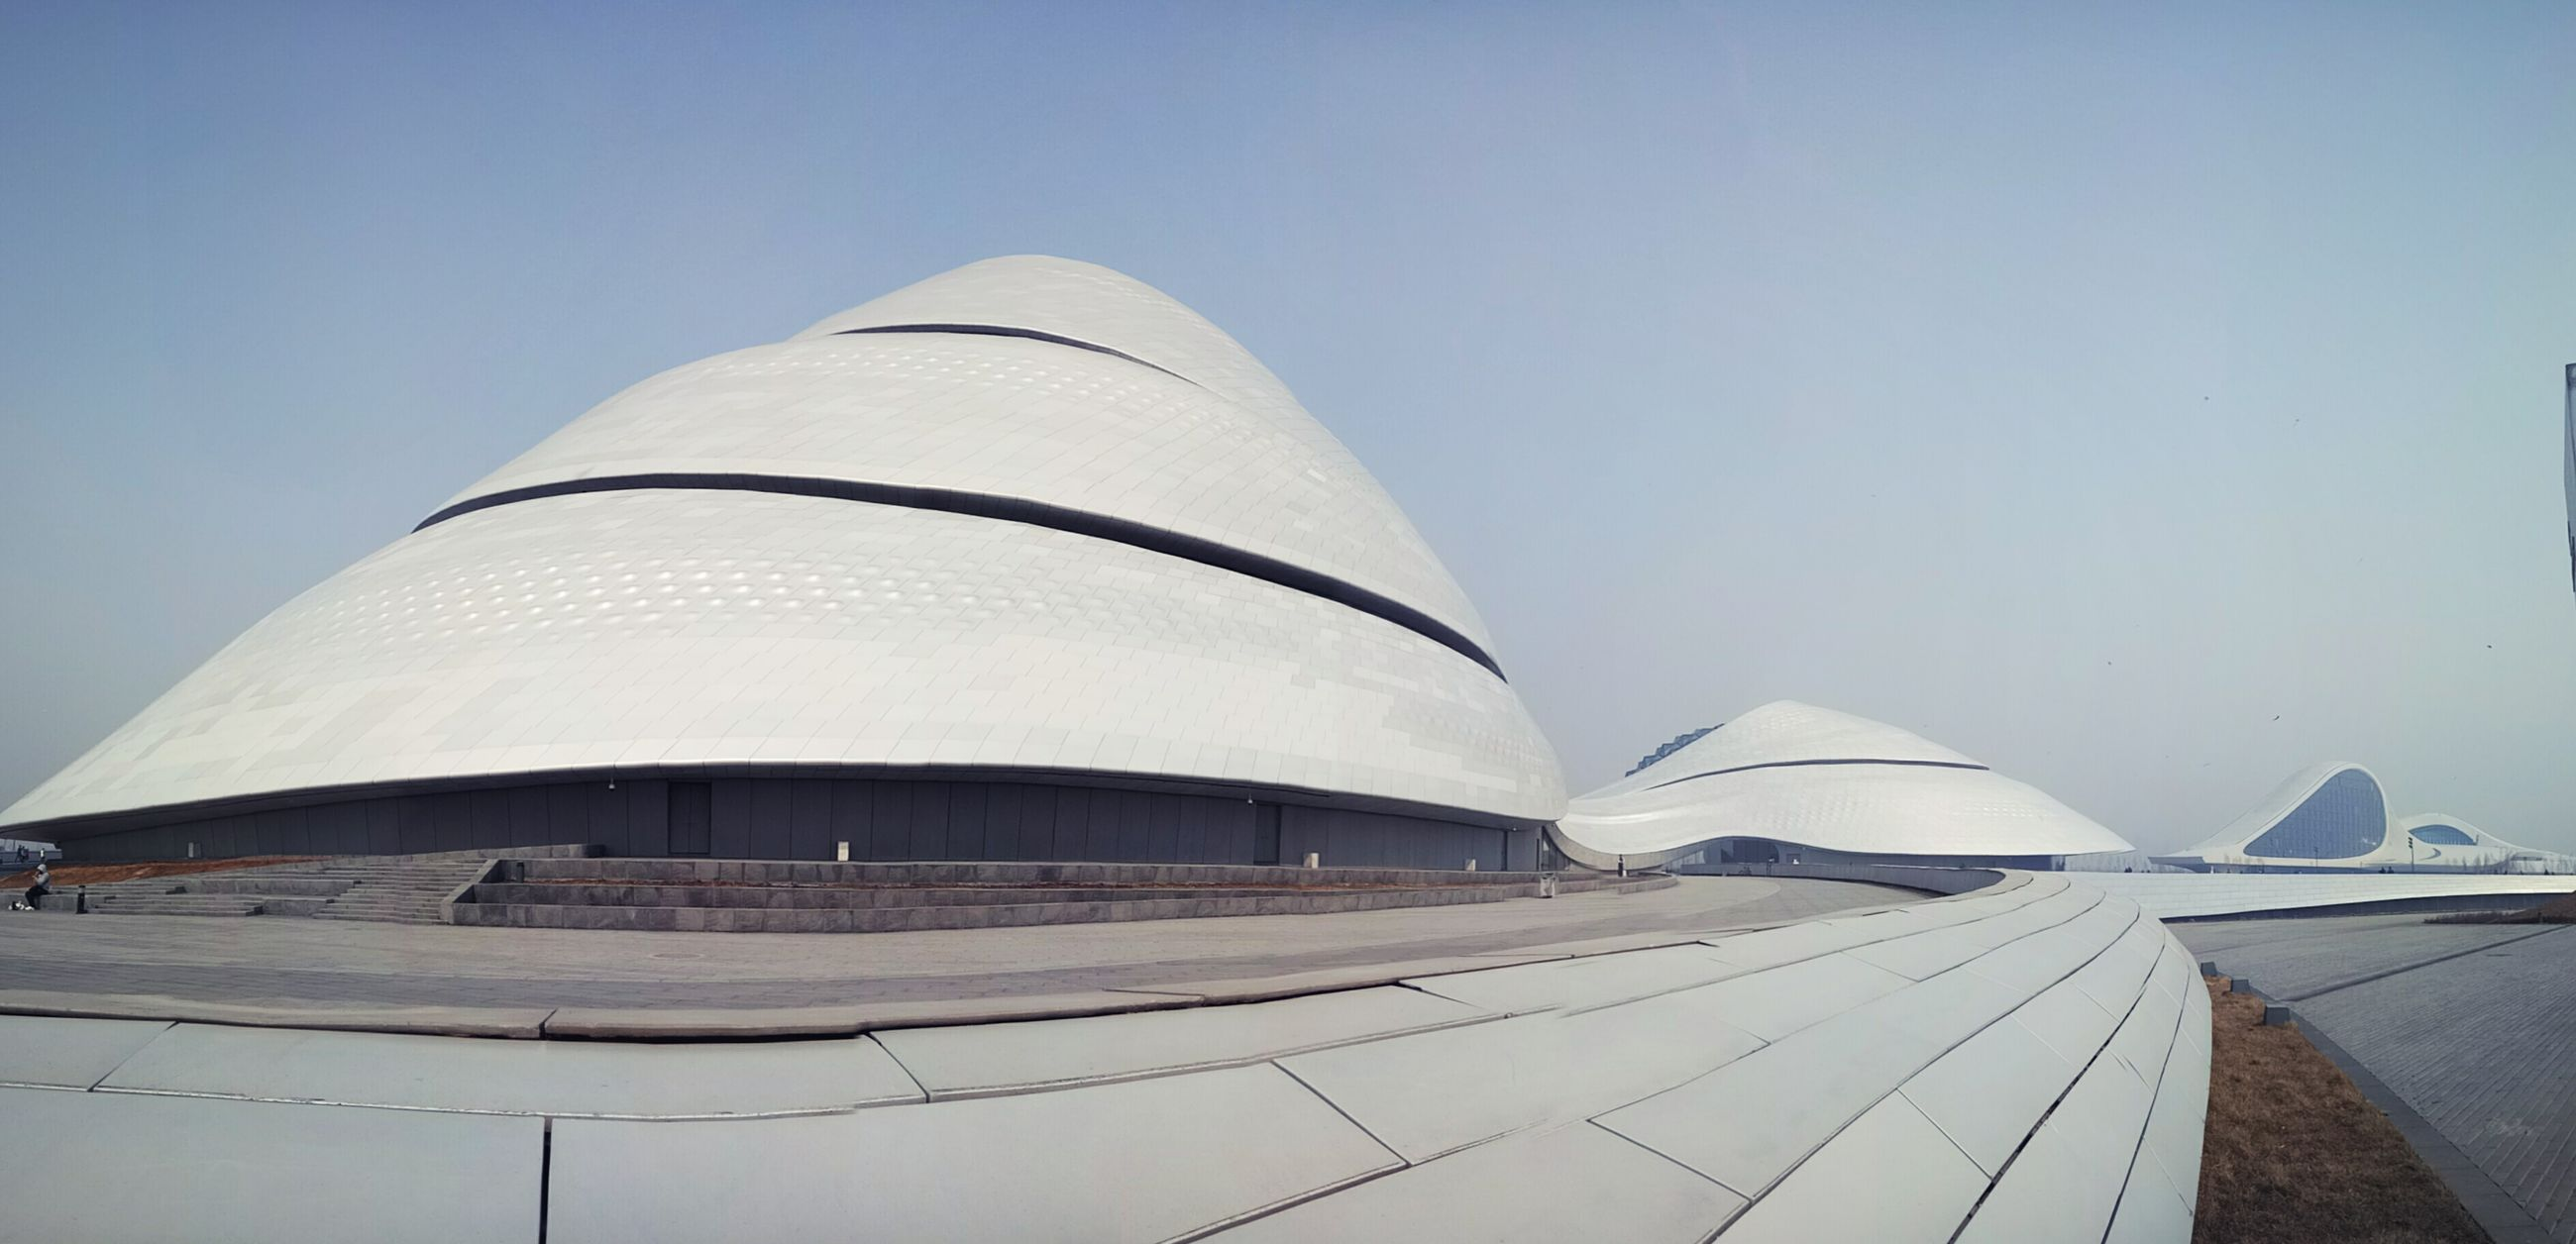 architecture, built structure, clear sky, building exterior, low angle view, no people, outdoors, day, place of worship, sky